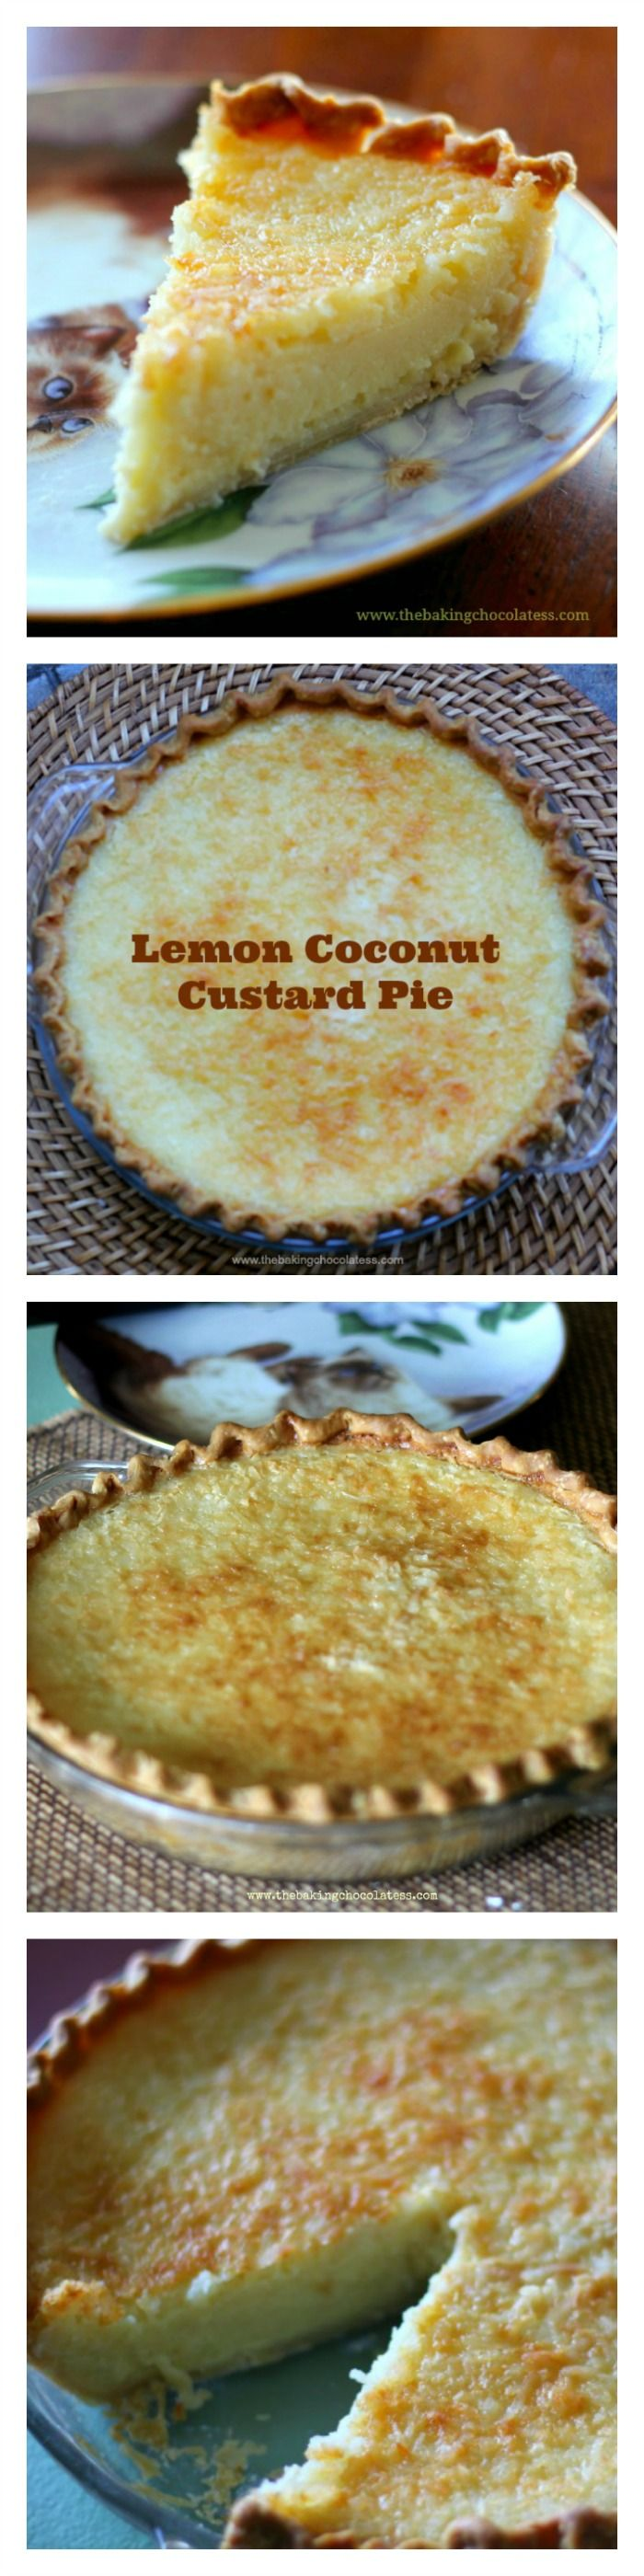 Lemon Coconut Custard Pie – The Baking ChocolaTess